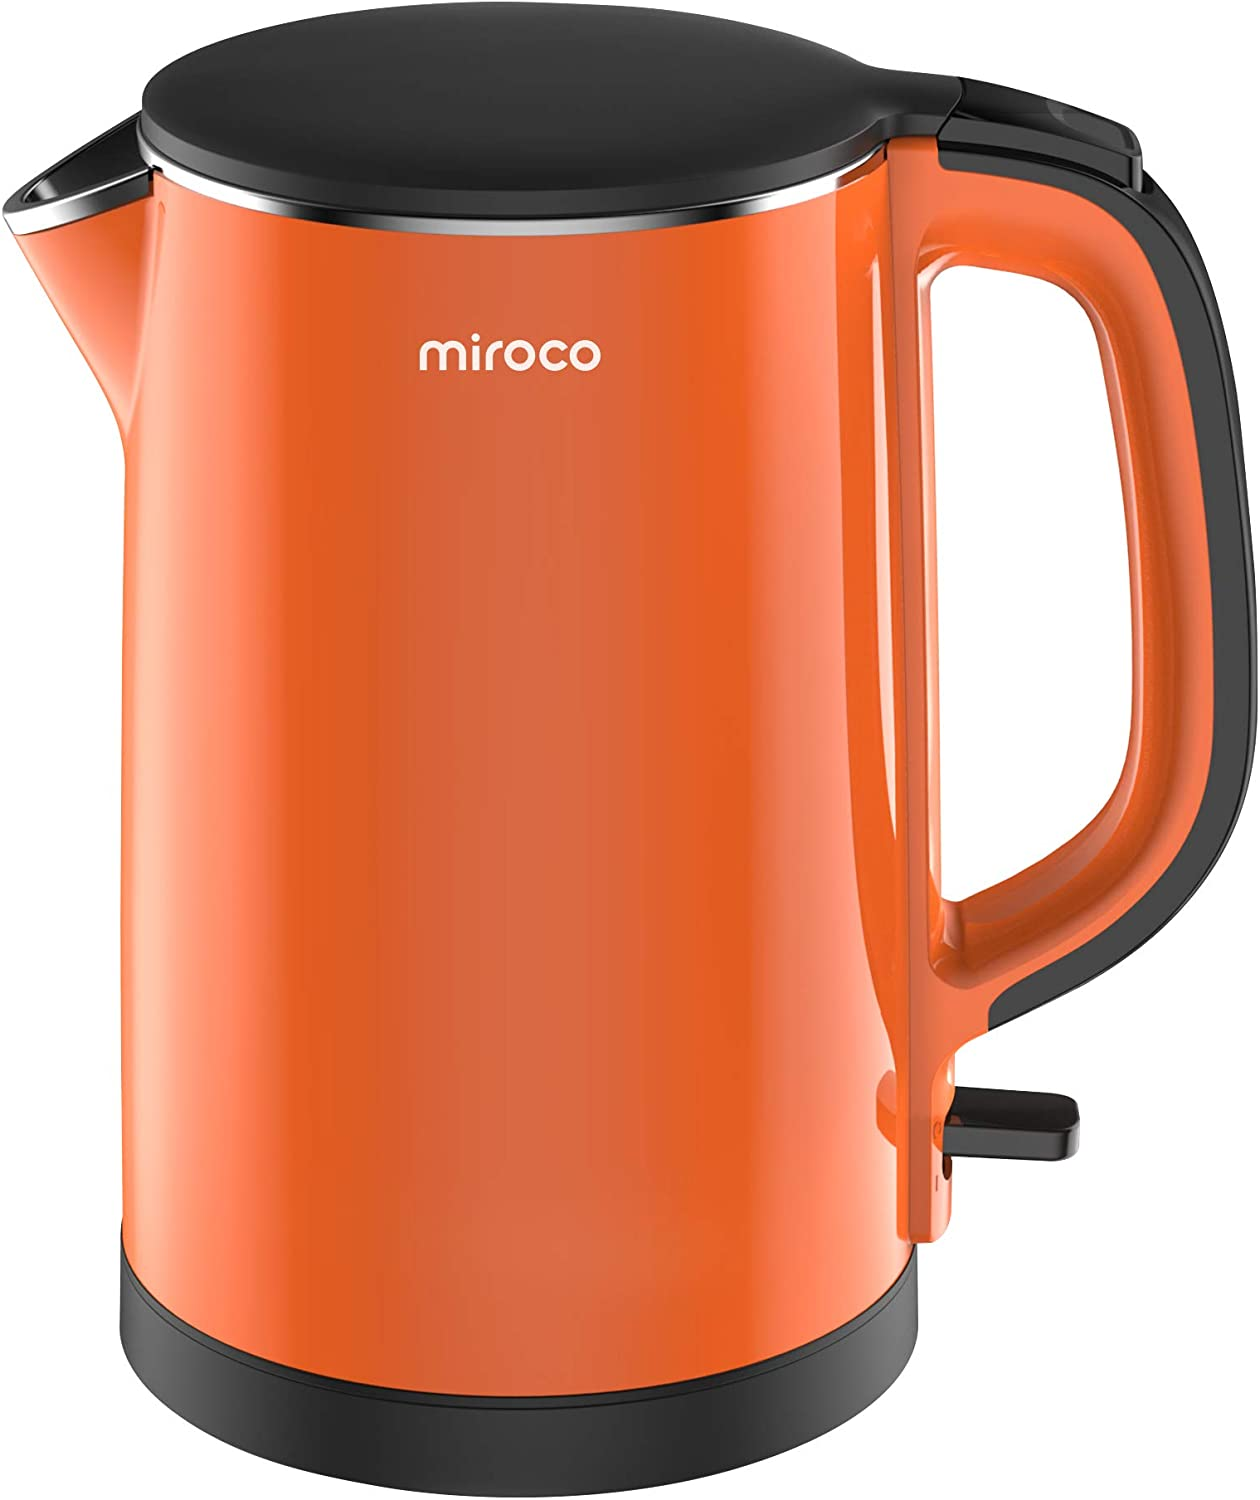 Miroco Electric Kettle, Double Wall Cool Touch 100 Stainless Steel BPA-Free Tea Kettle with 1500W Fast Boiling water, Overheating Protection, Cordless with Auto Shut-Off Boil Dry Protection-Orange